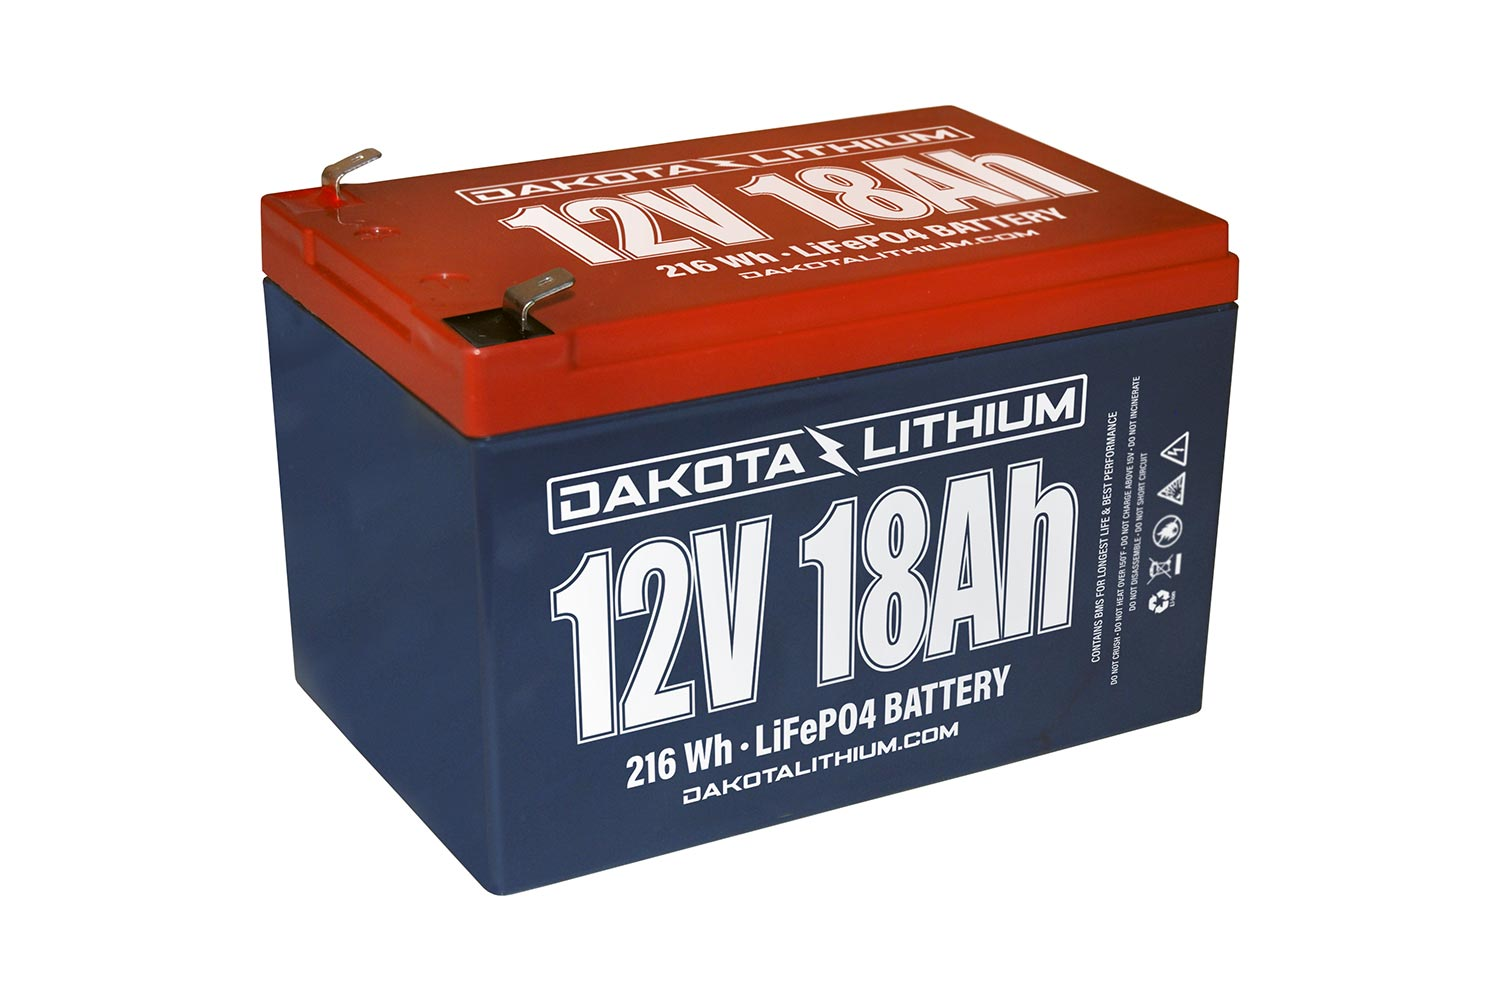 Extend your power with Dakota Lithium's 12-volt, 18Ah battery.